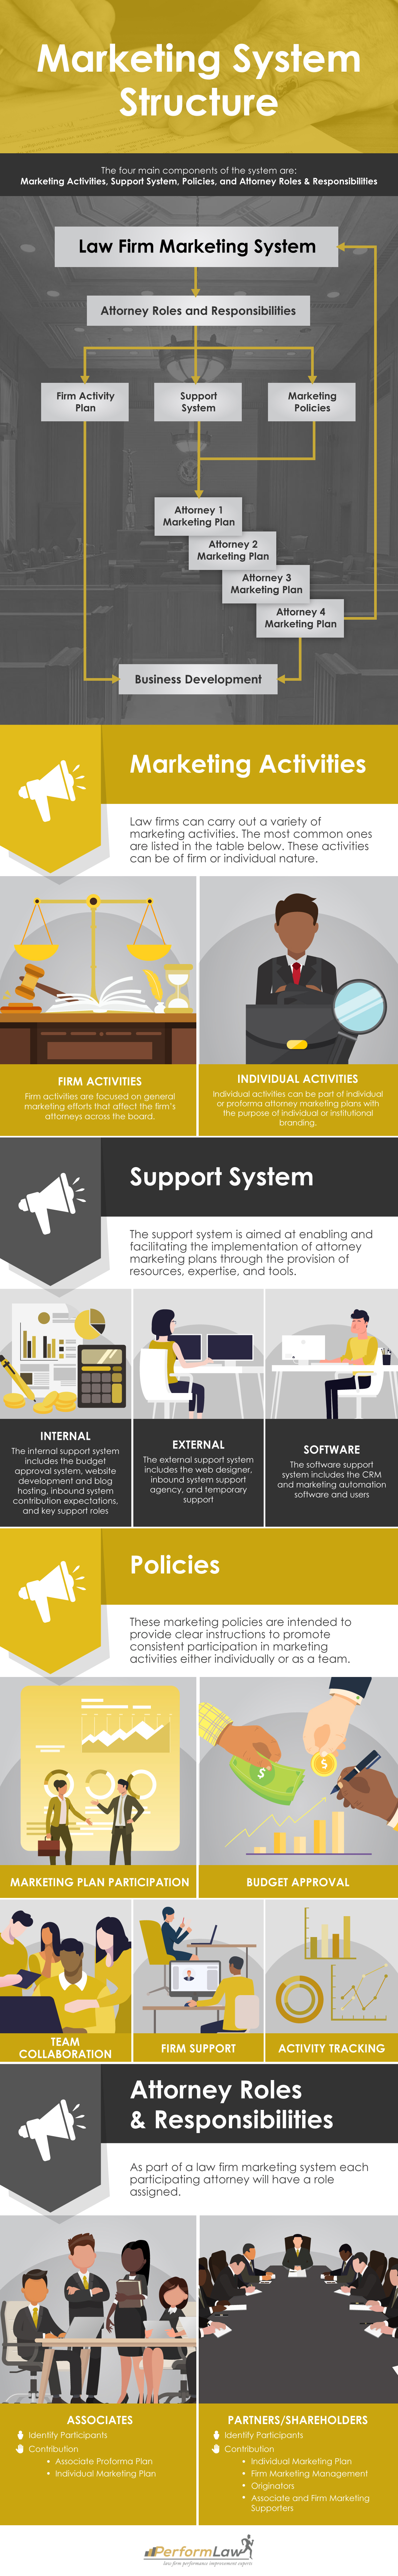 Marketing-System-Structure-Infographic-v3 (1)